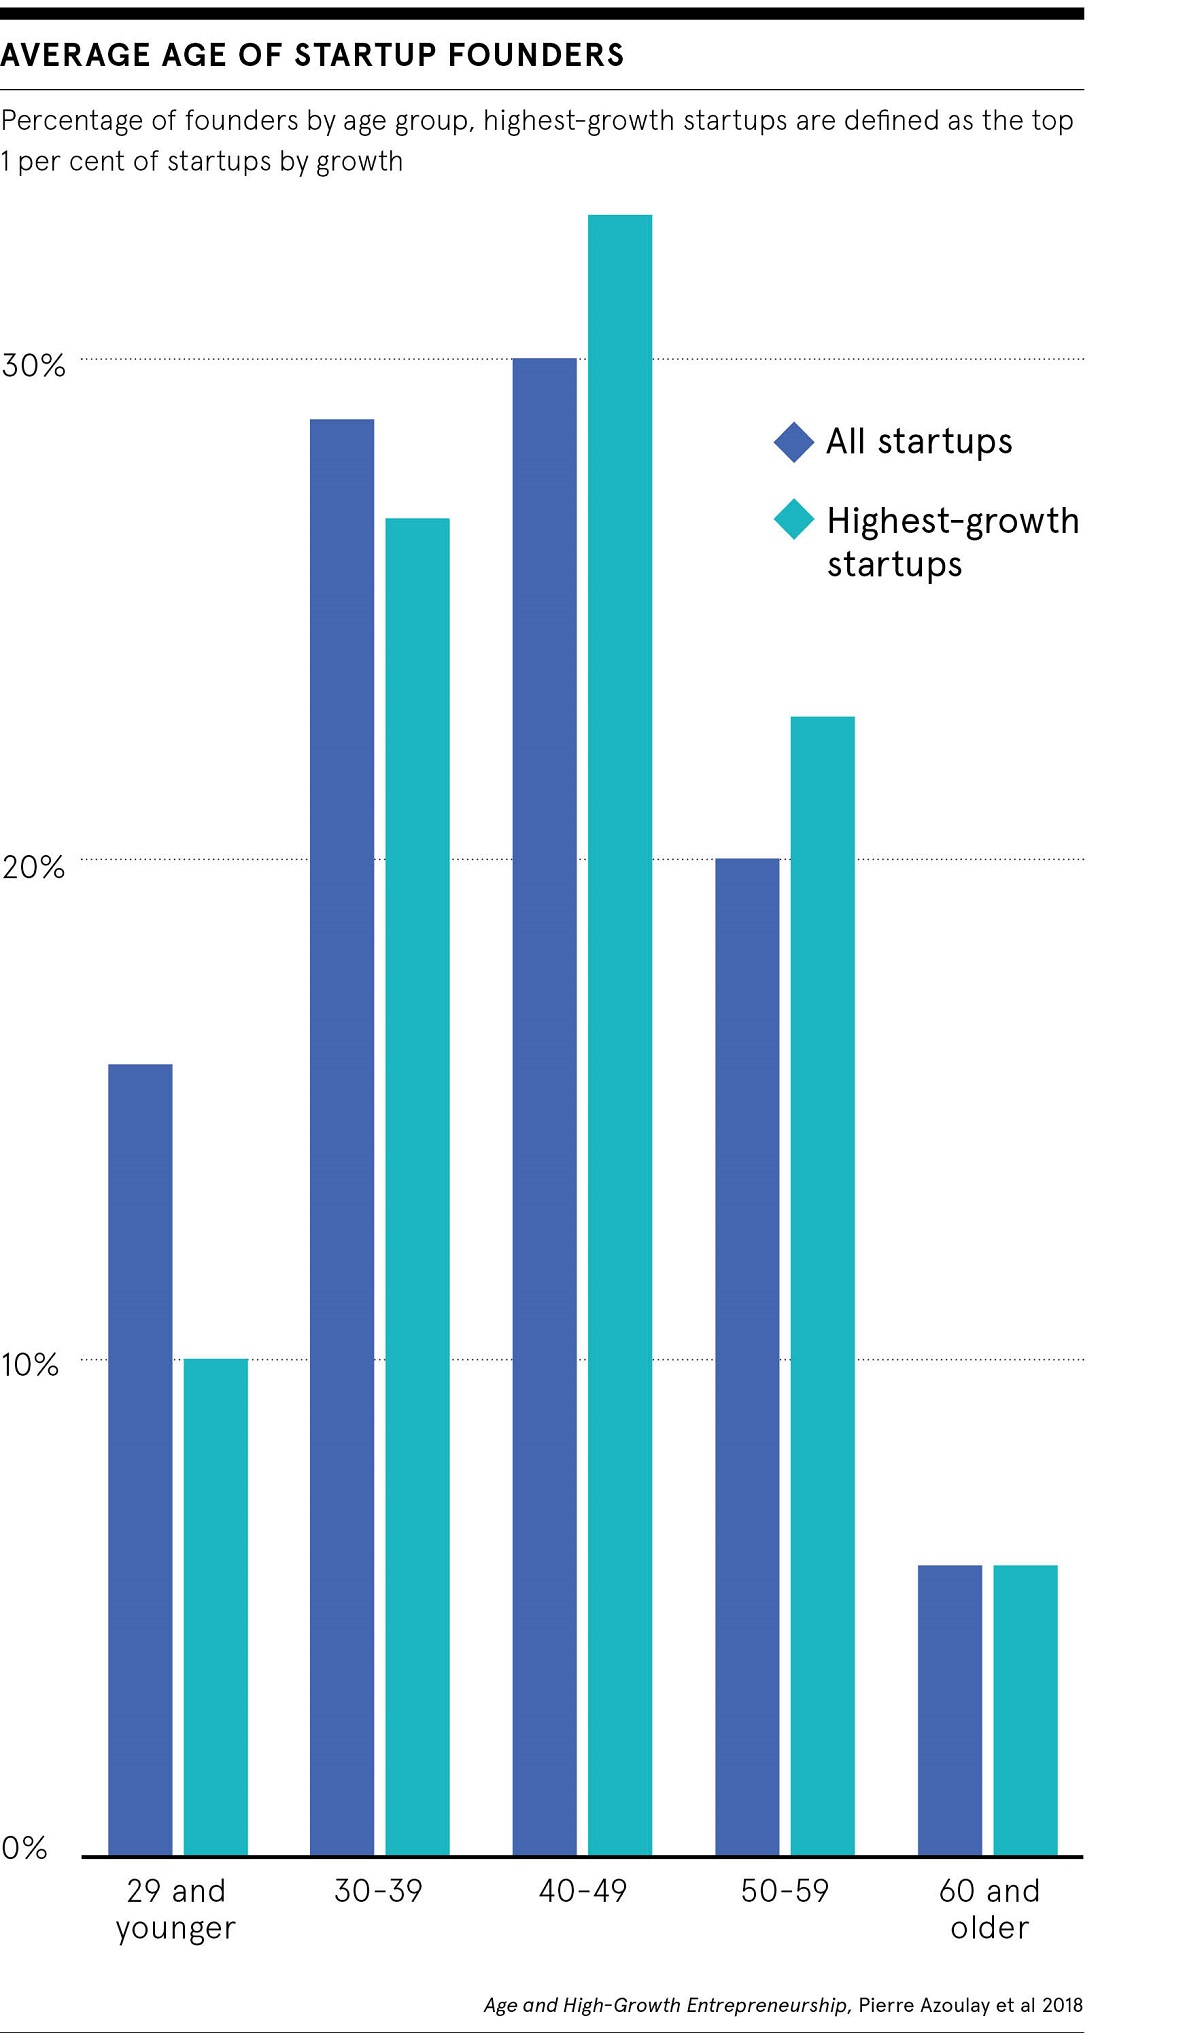 Average age of startup founders